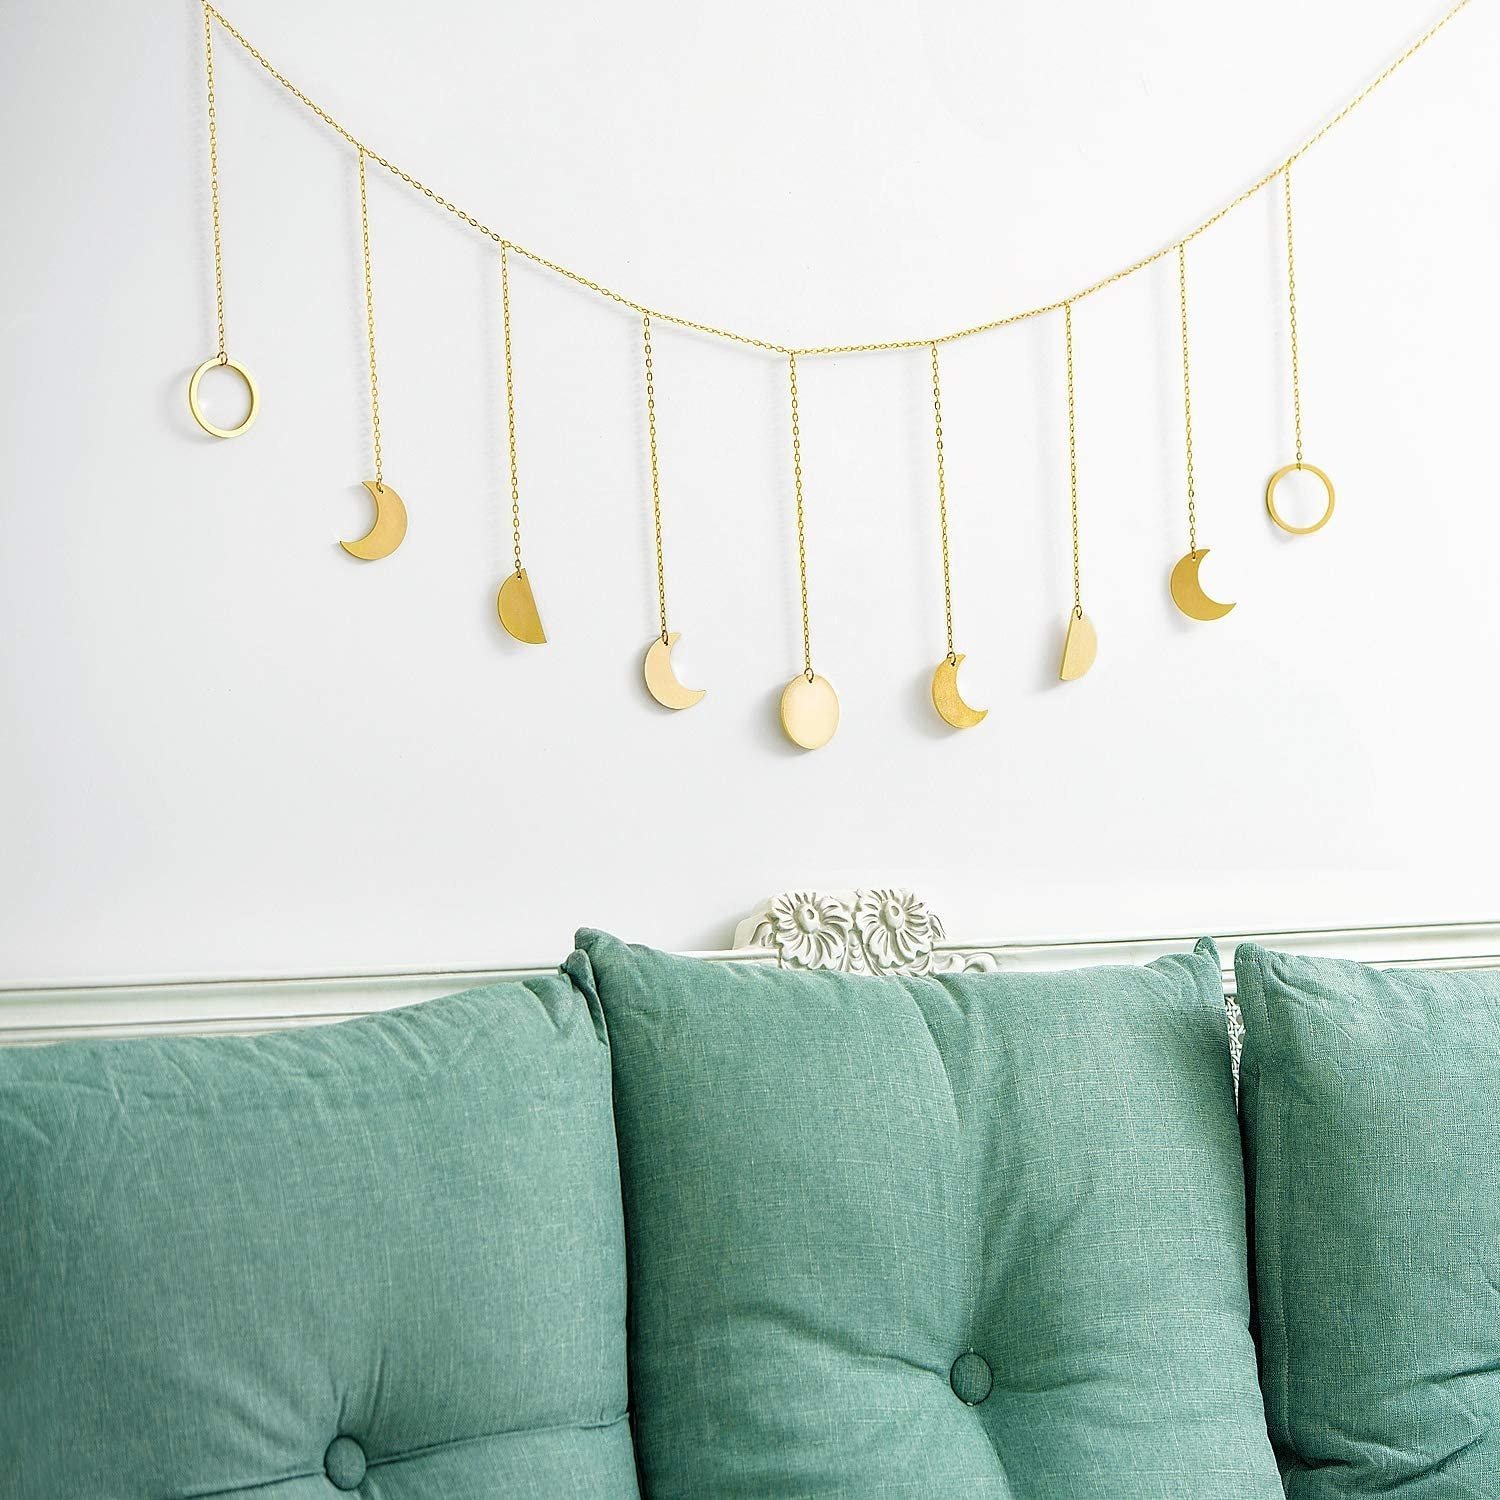 The moon phase garland above a couch